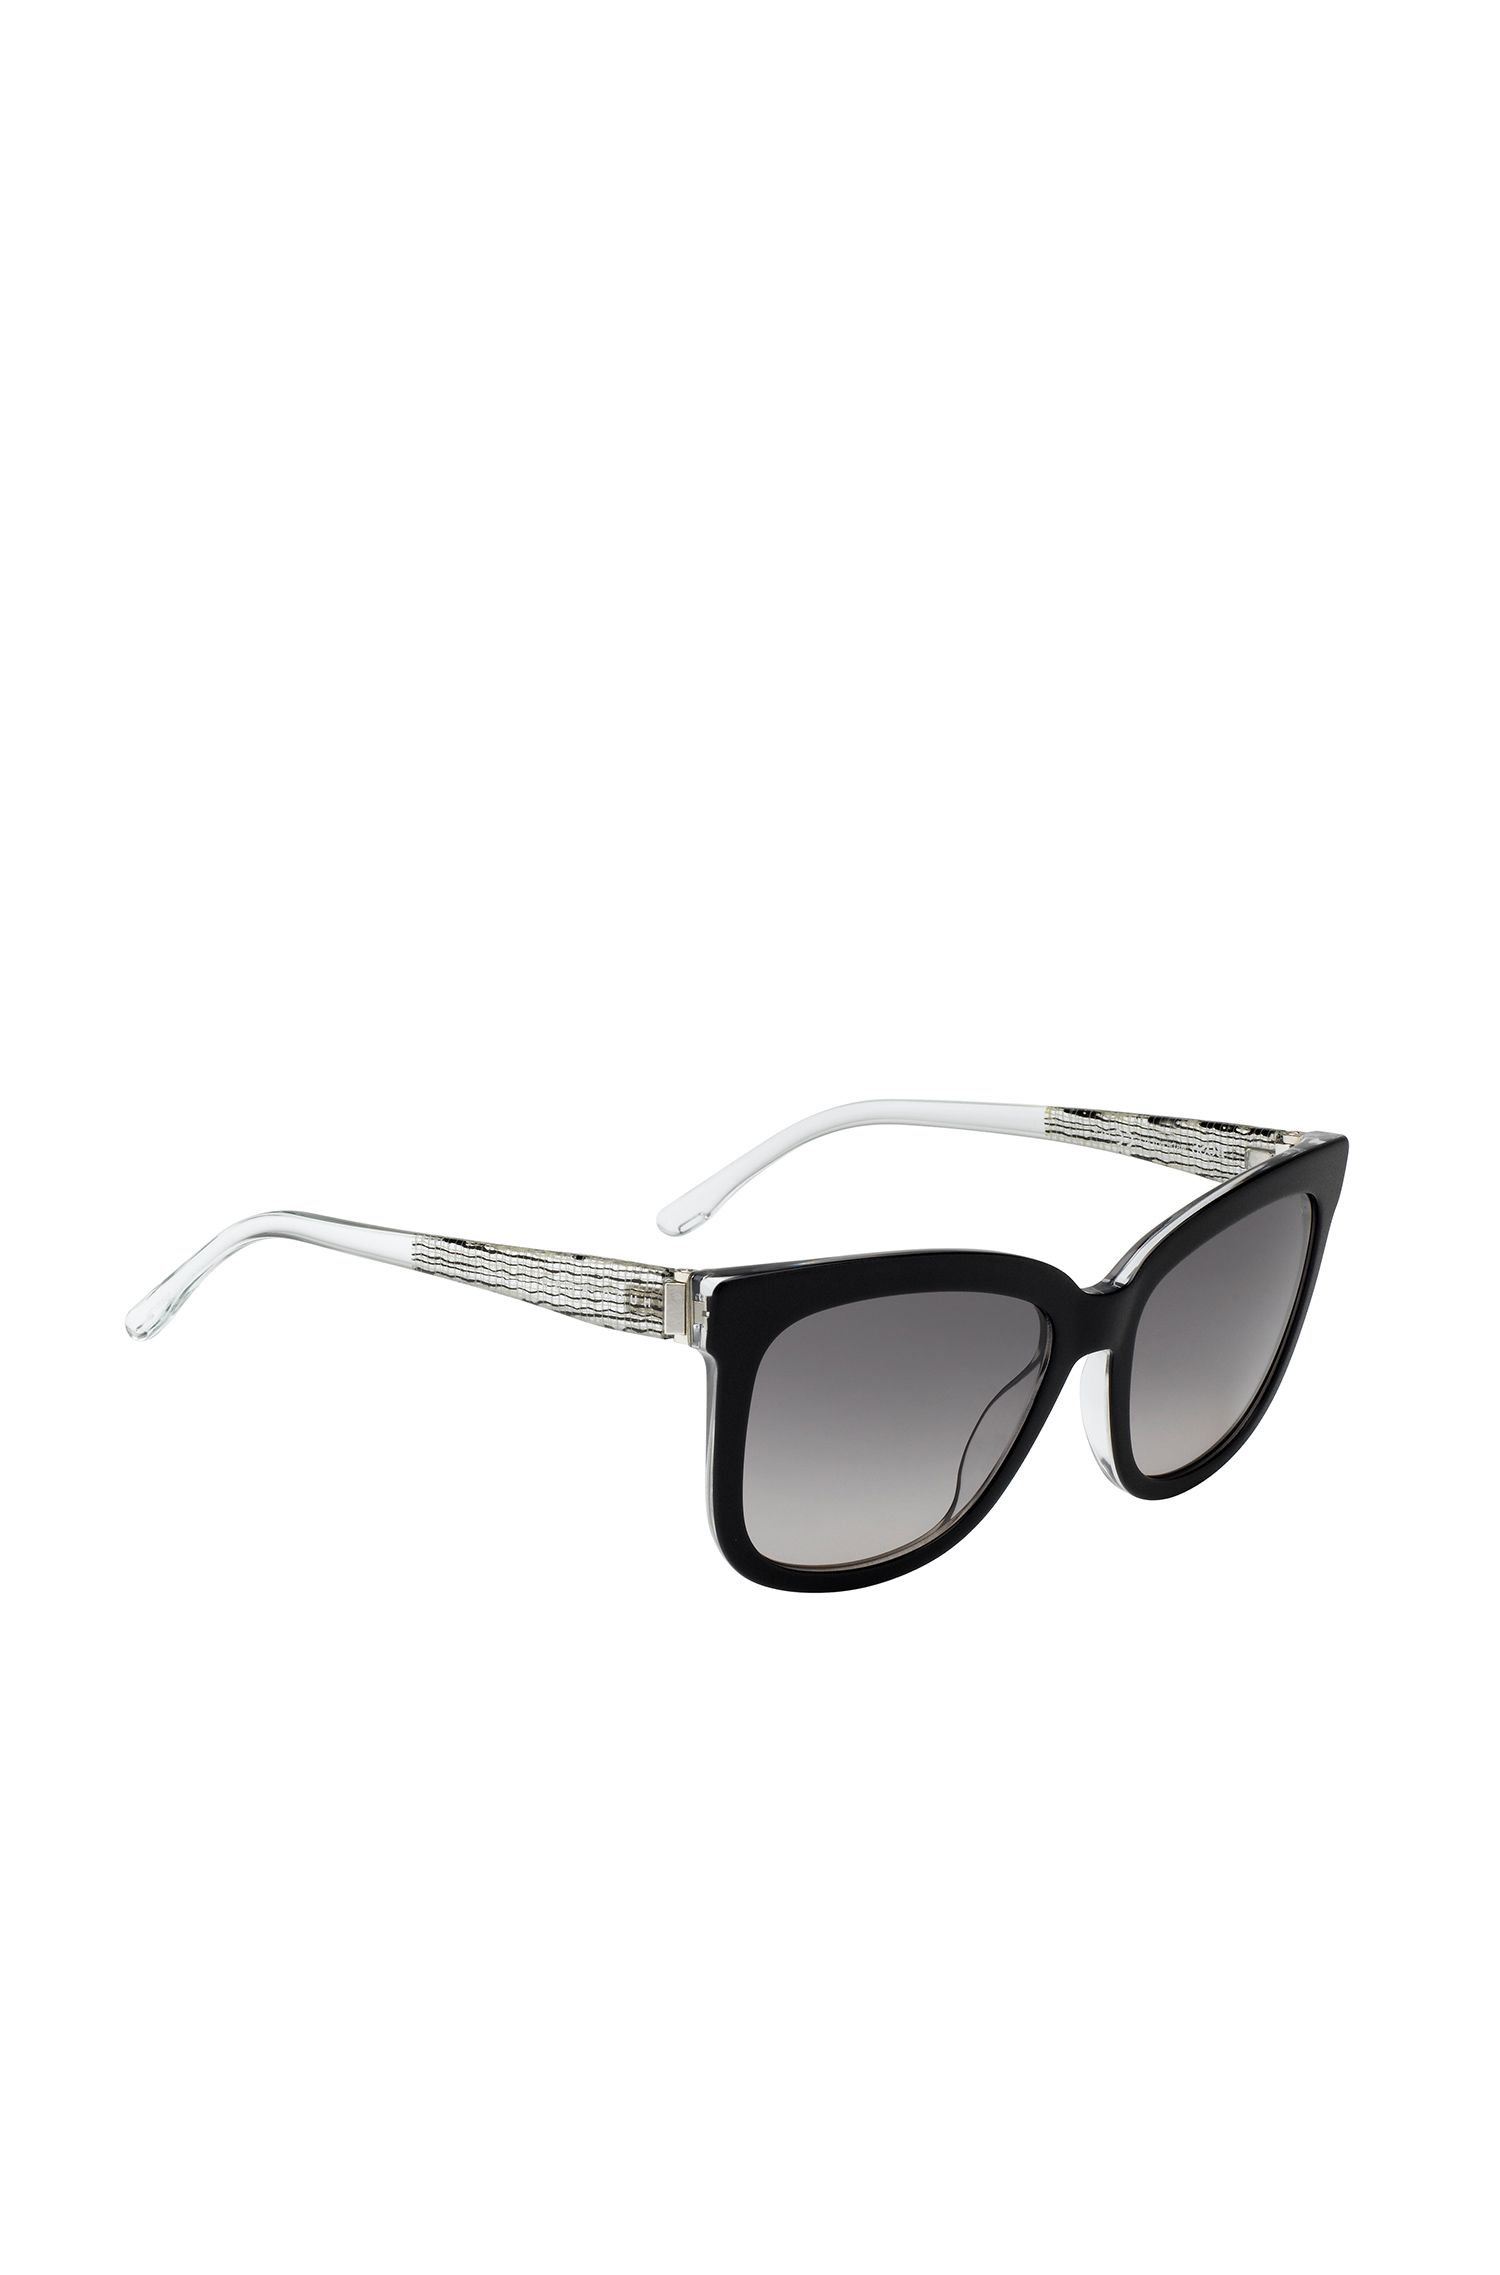 'BOSS 0850S' | Acetate Optyl Cateye Sunglasses